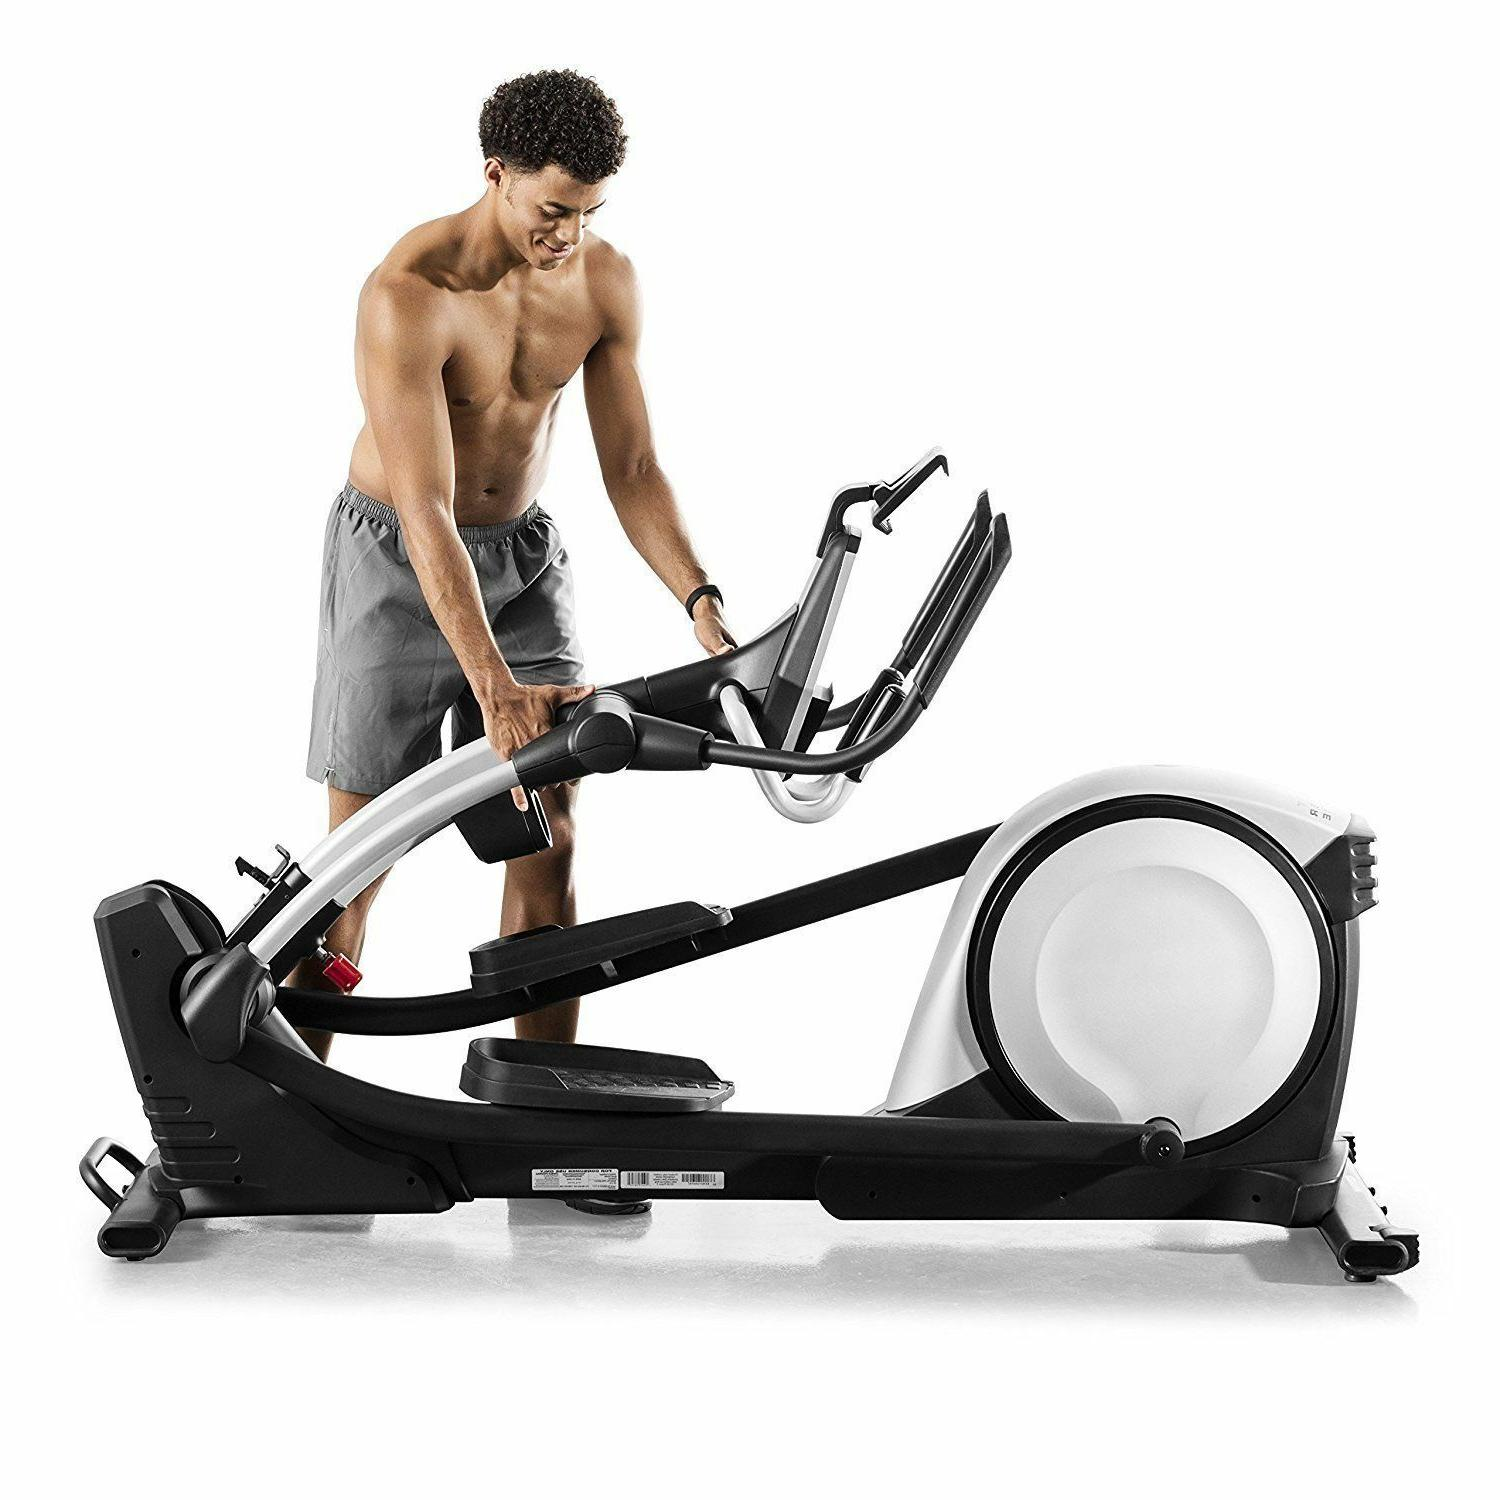 New Proform Smart 495 CSE Elliptical, Workout Machine